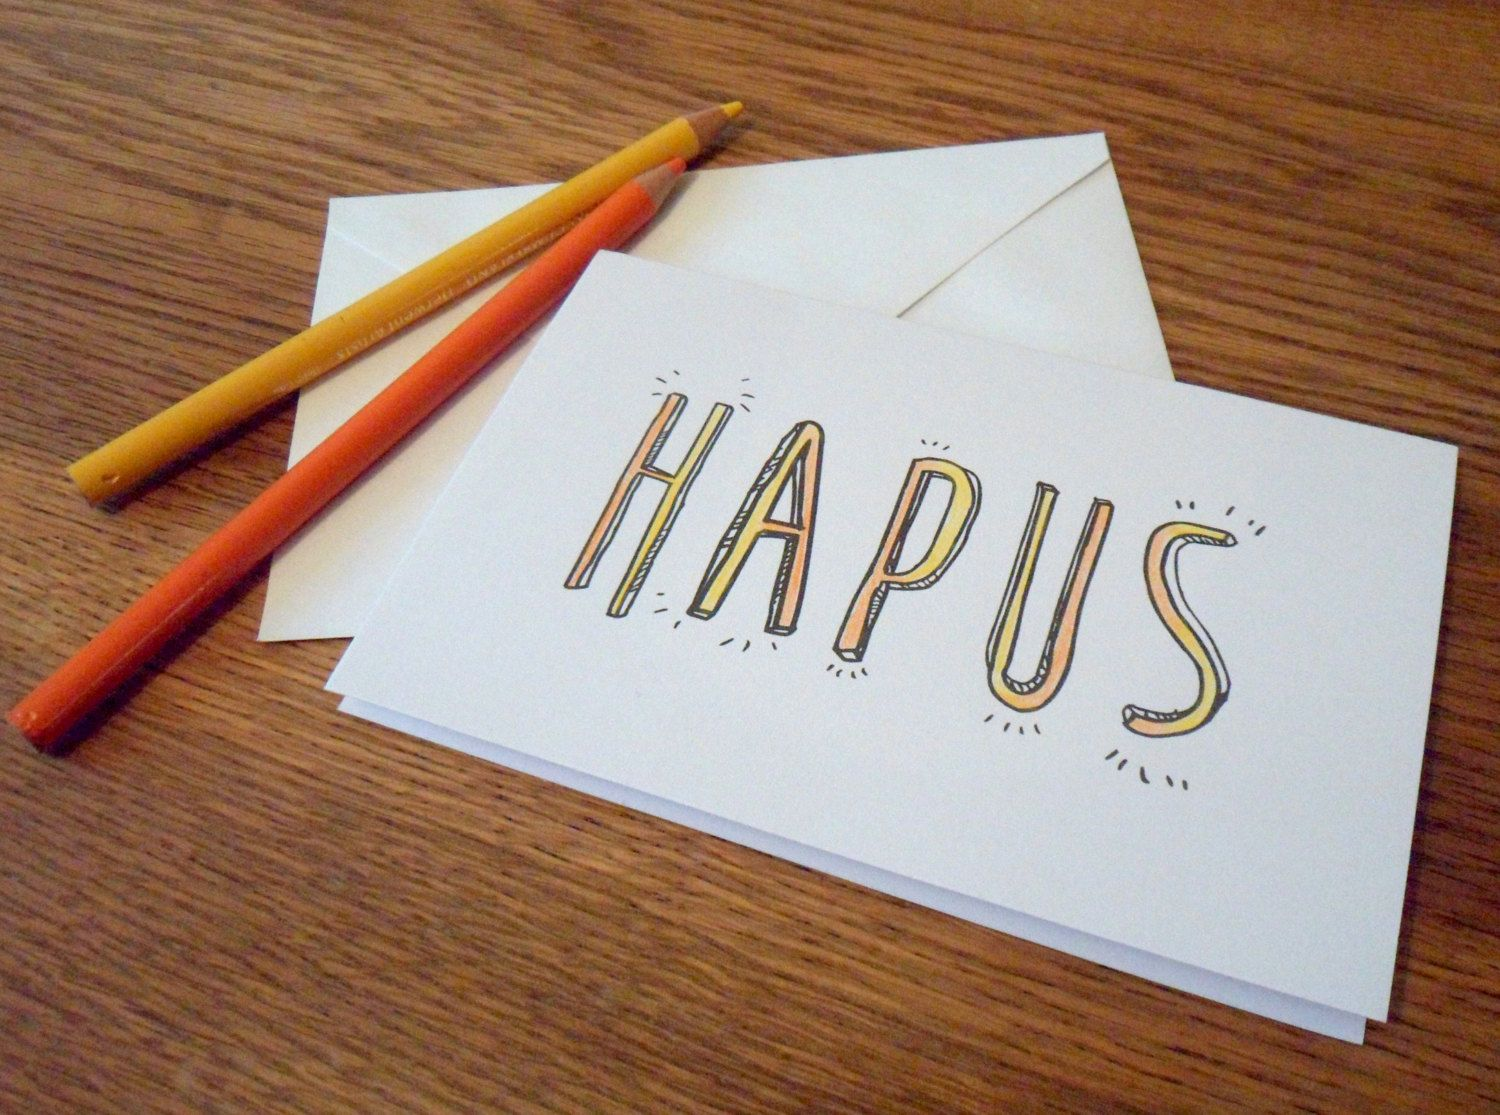 Hapus Happy Welsh Greetings Card Adult Colouring Typography Diy